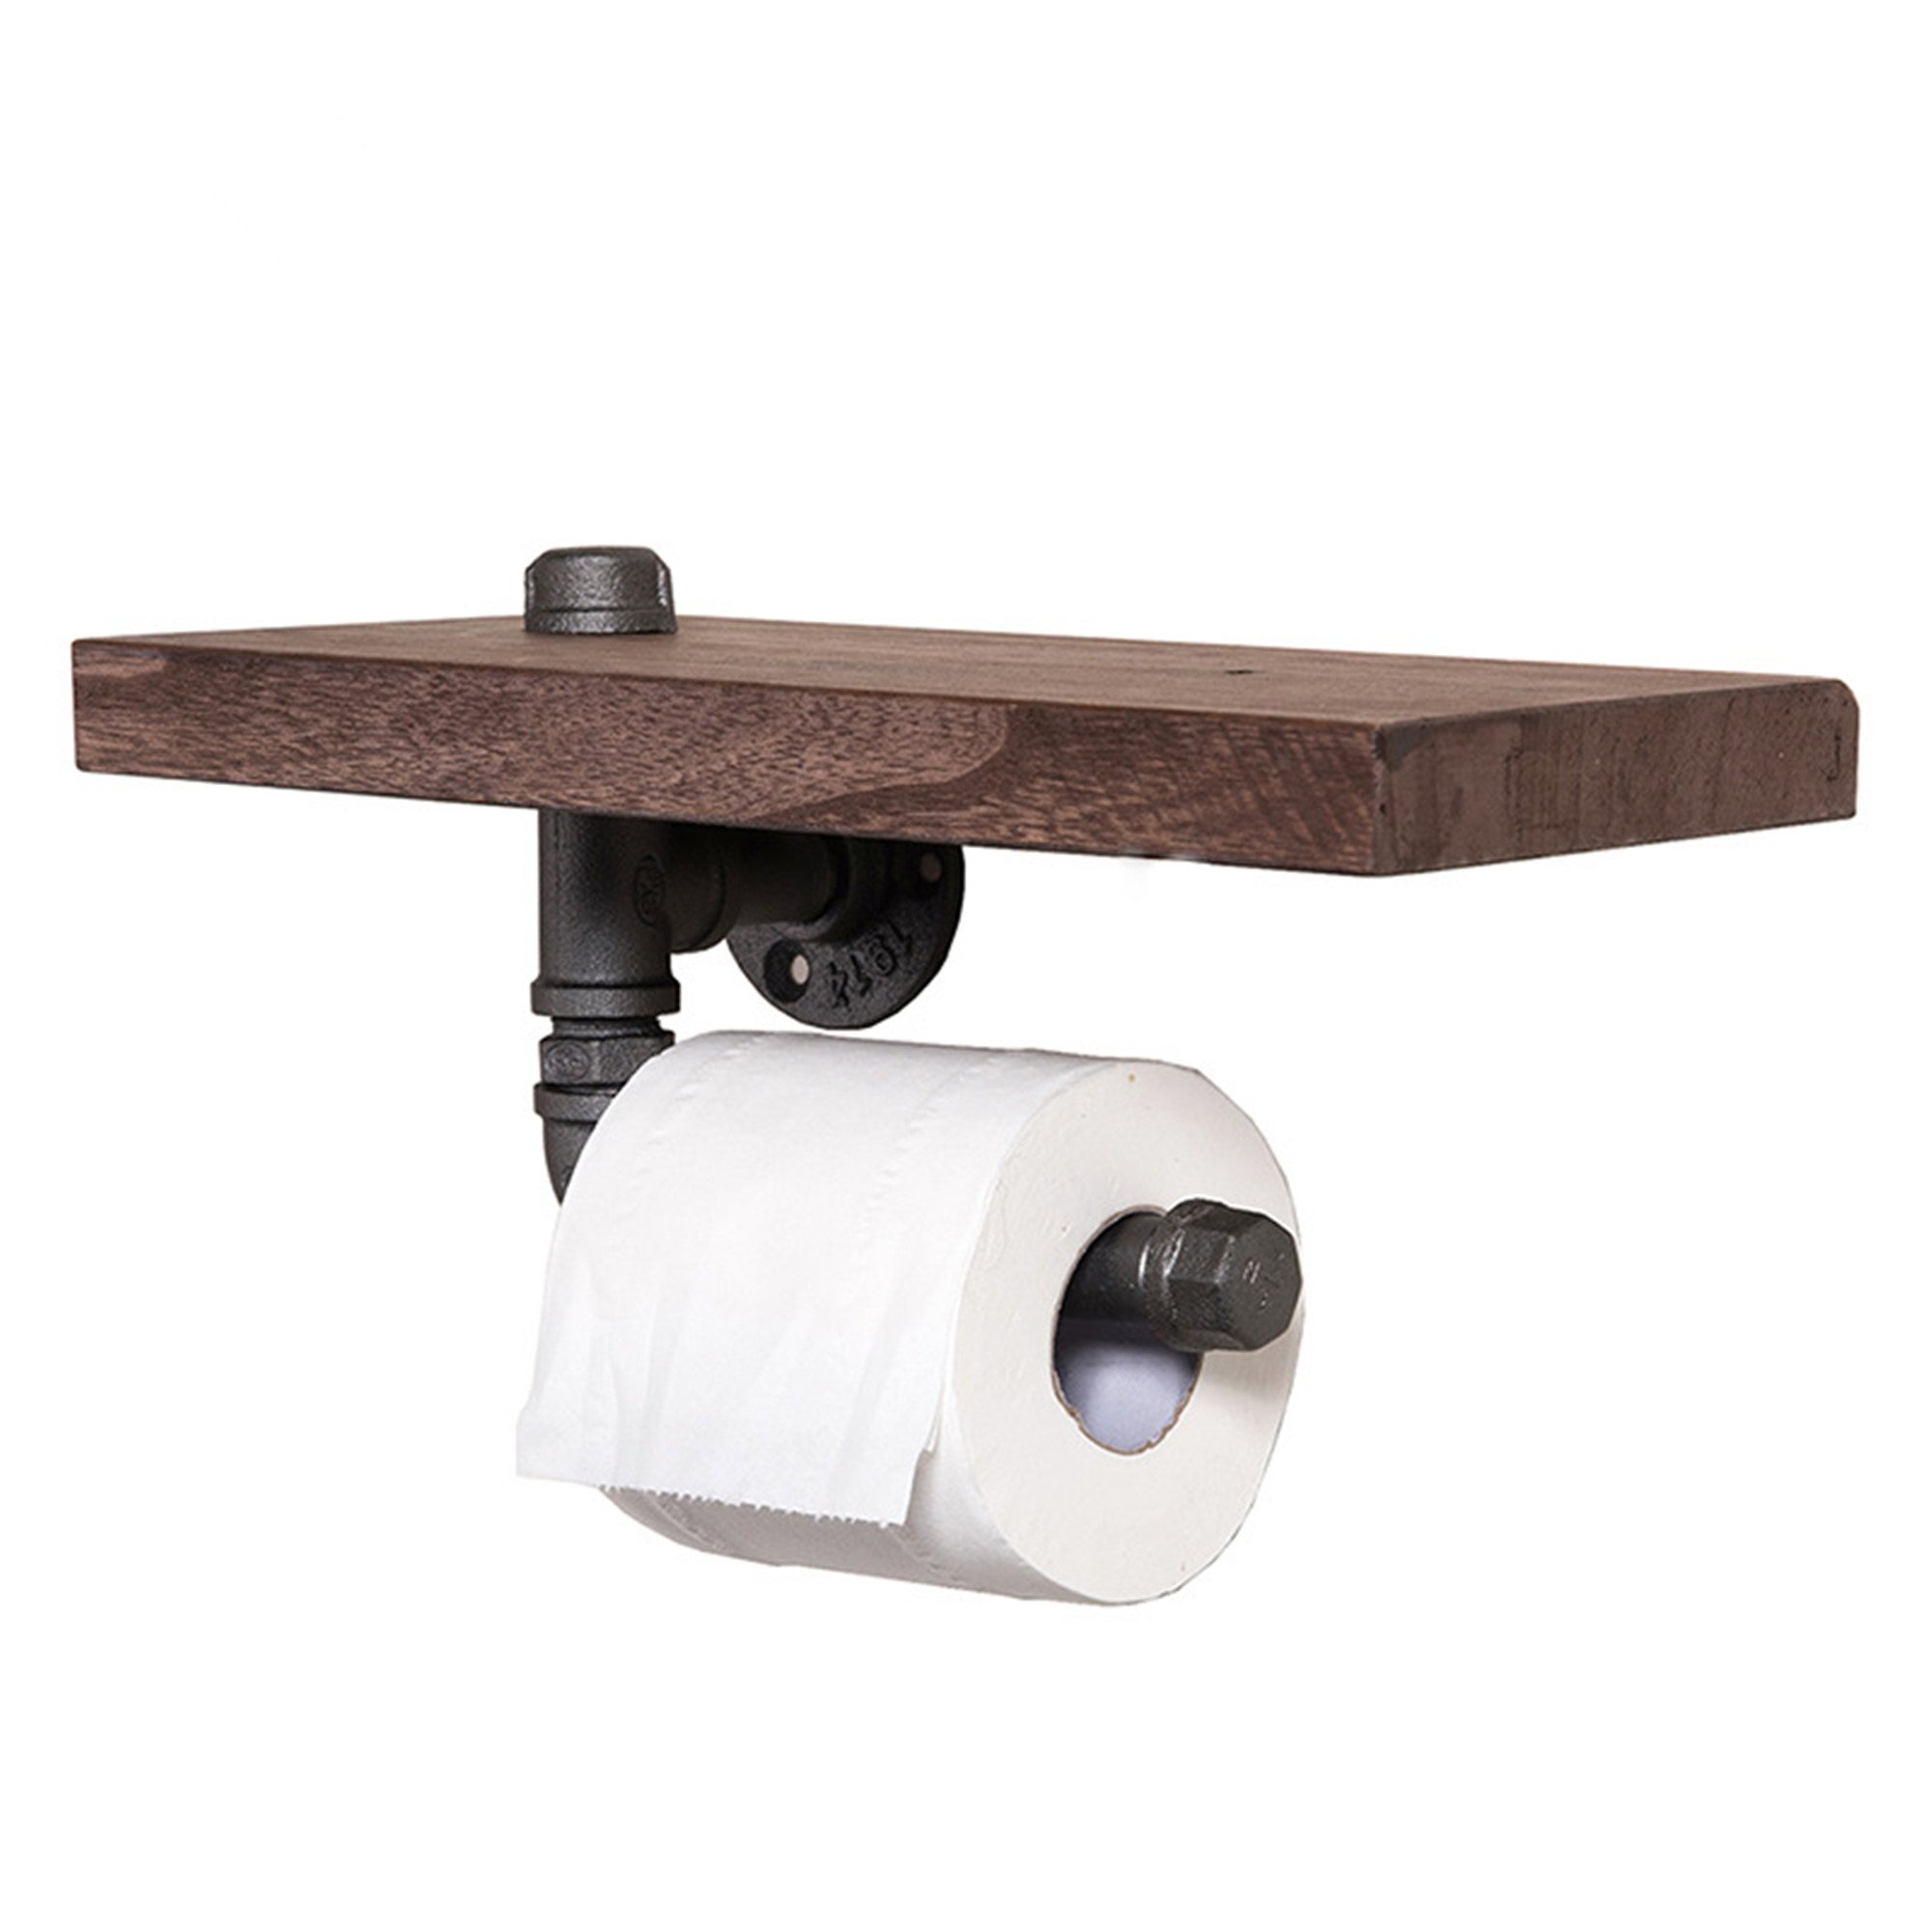 Industrial Toilet Paper Holder with Wooden Shelf or Stainless steel,Toilet Tissue Roll Holder,Rustic Style Water Pipe Wall Mounted,Fashion Display Shelves With Instructions (Holder 01)